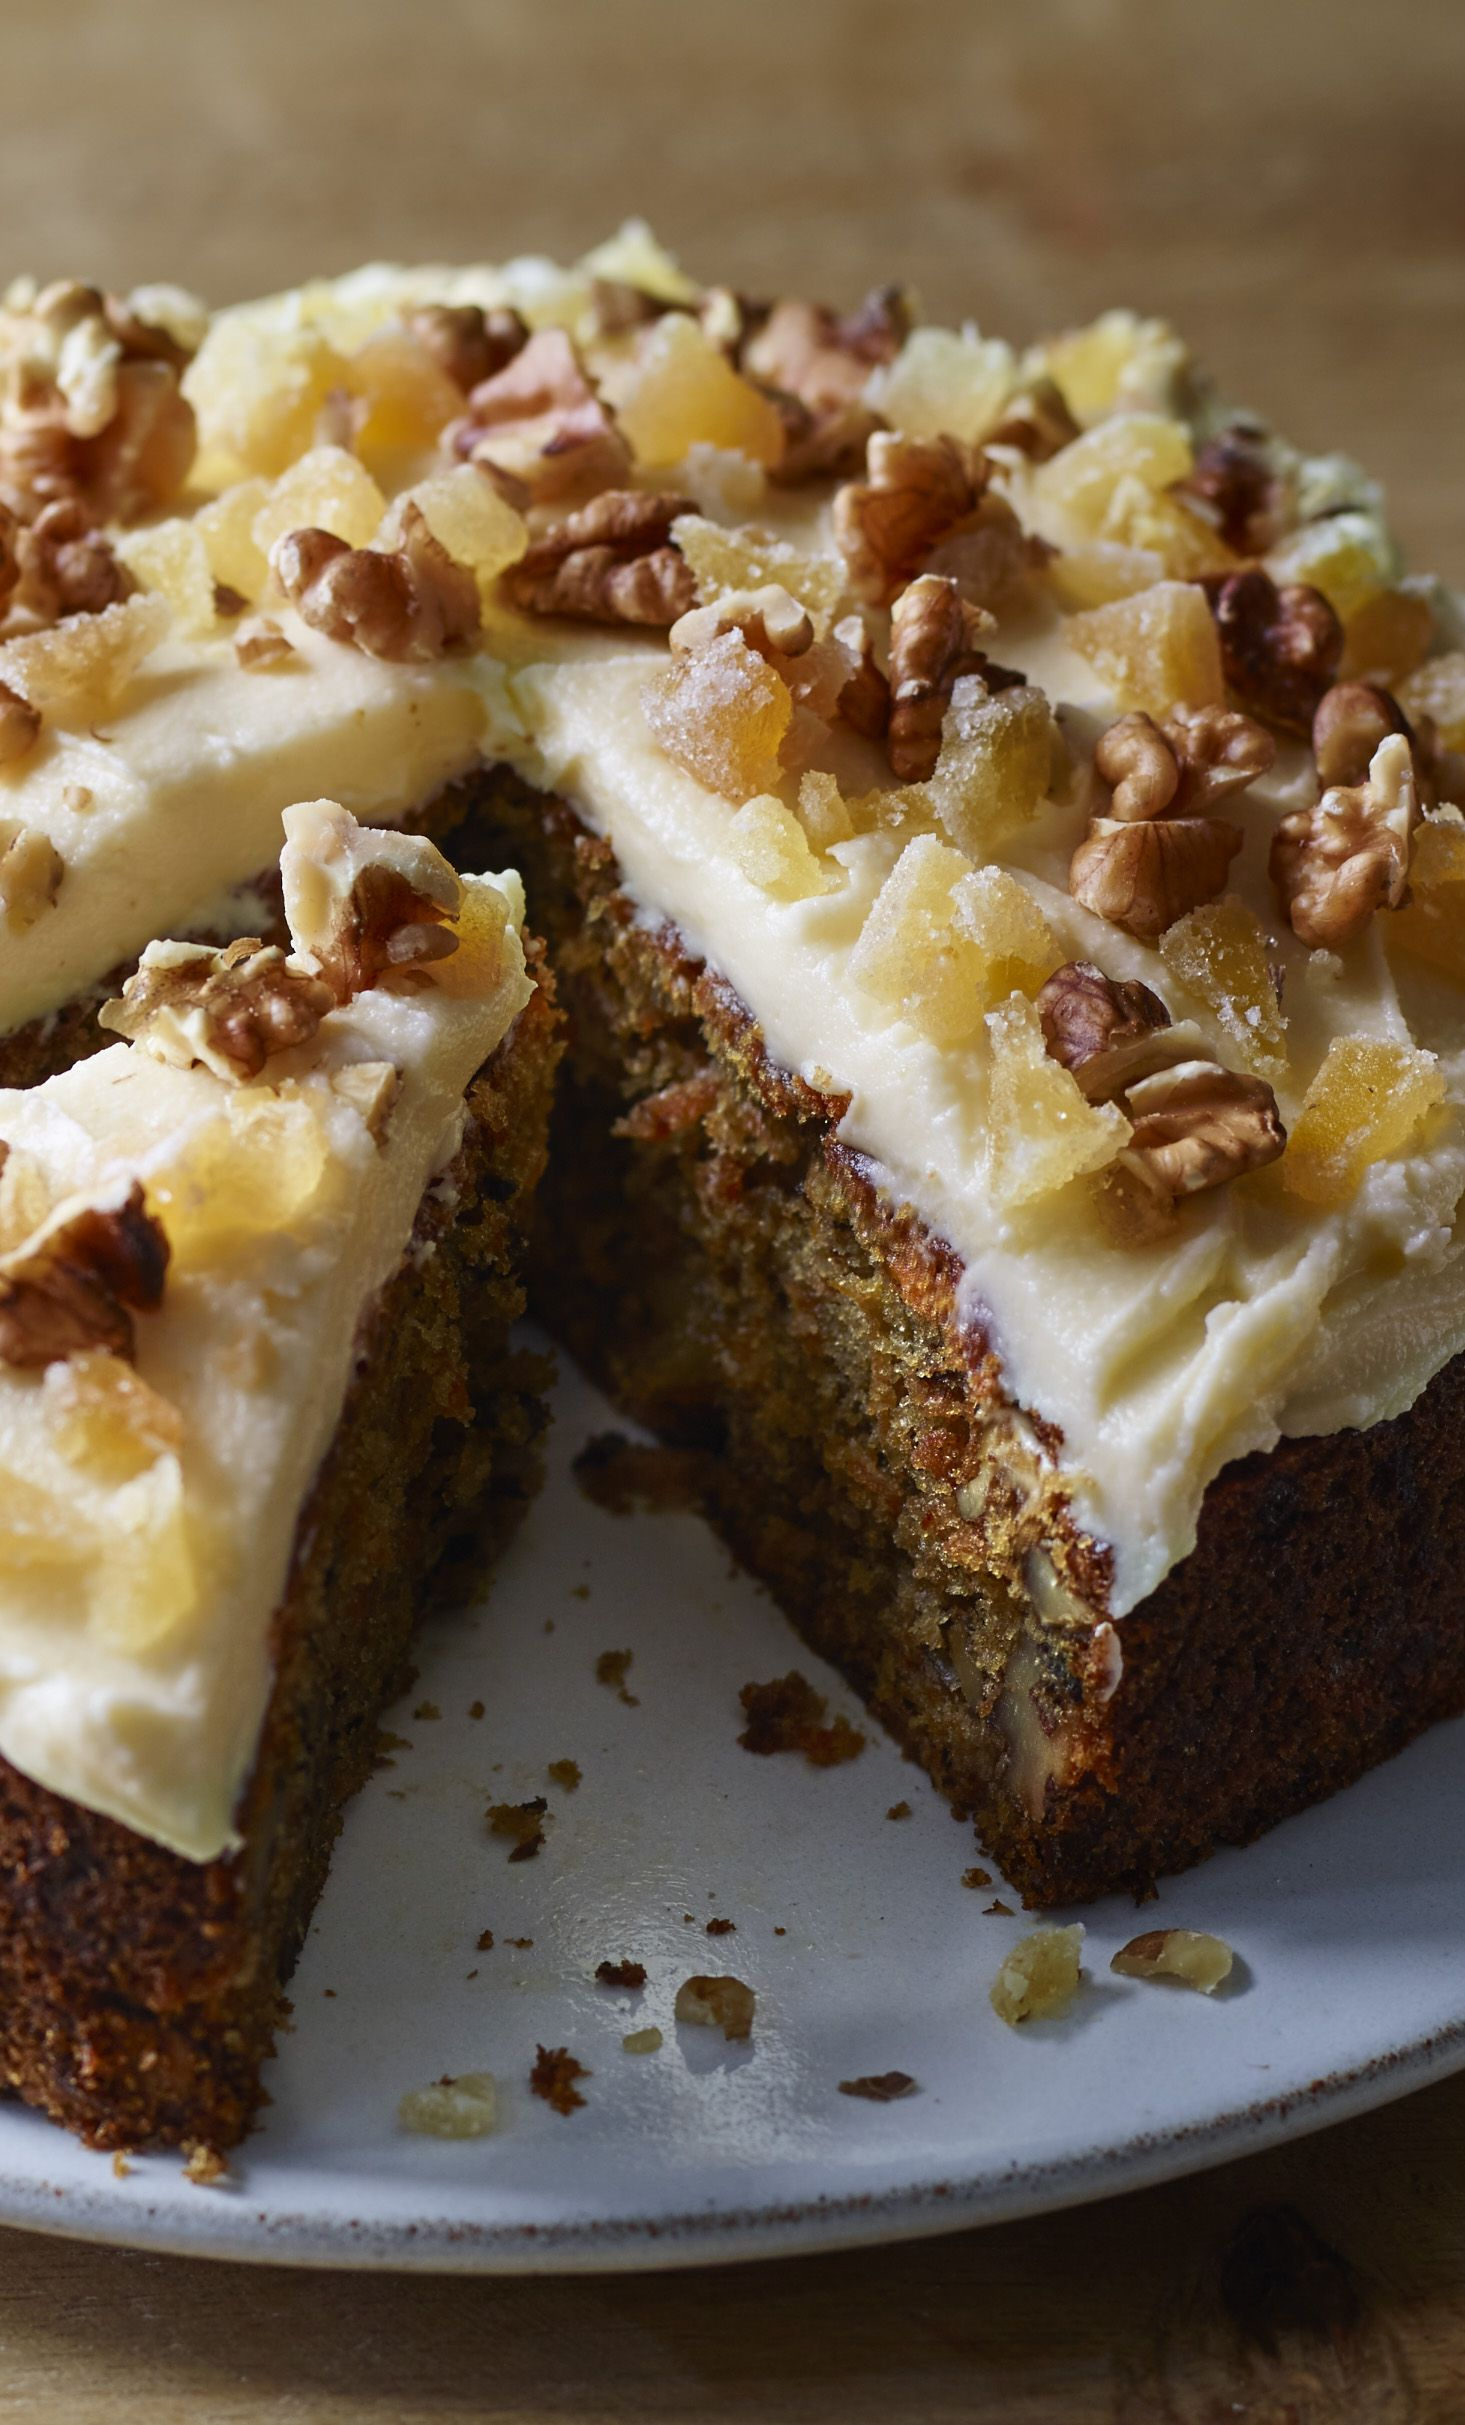 Ginger And Walnut Carrot Cake Recipe Baking Carrot Cake